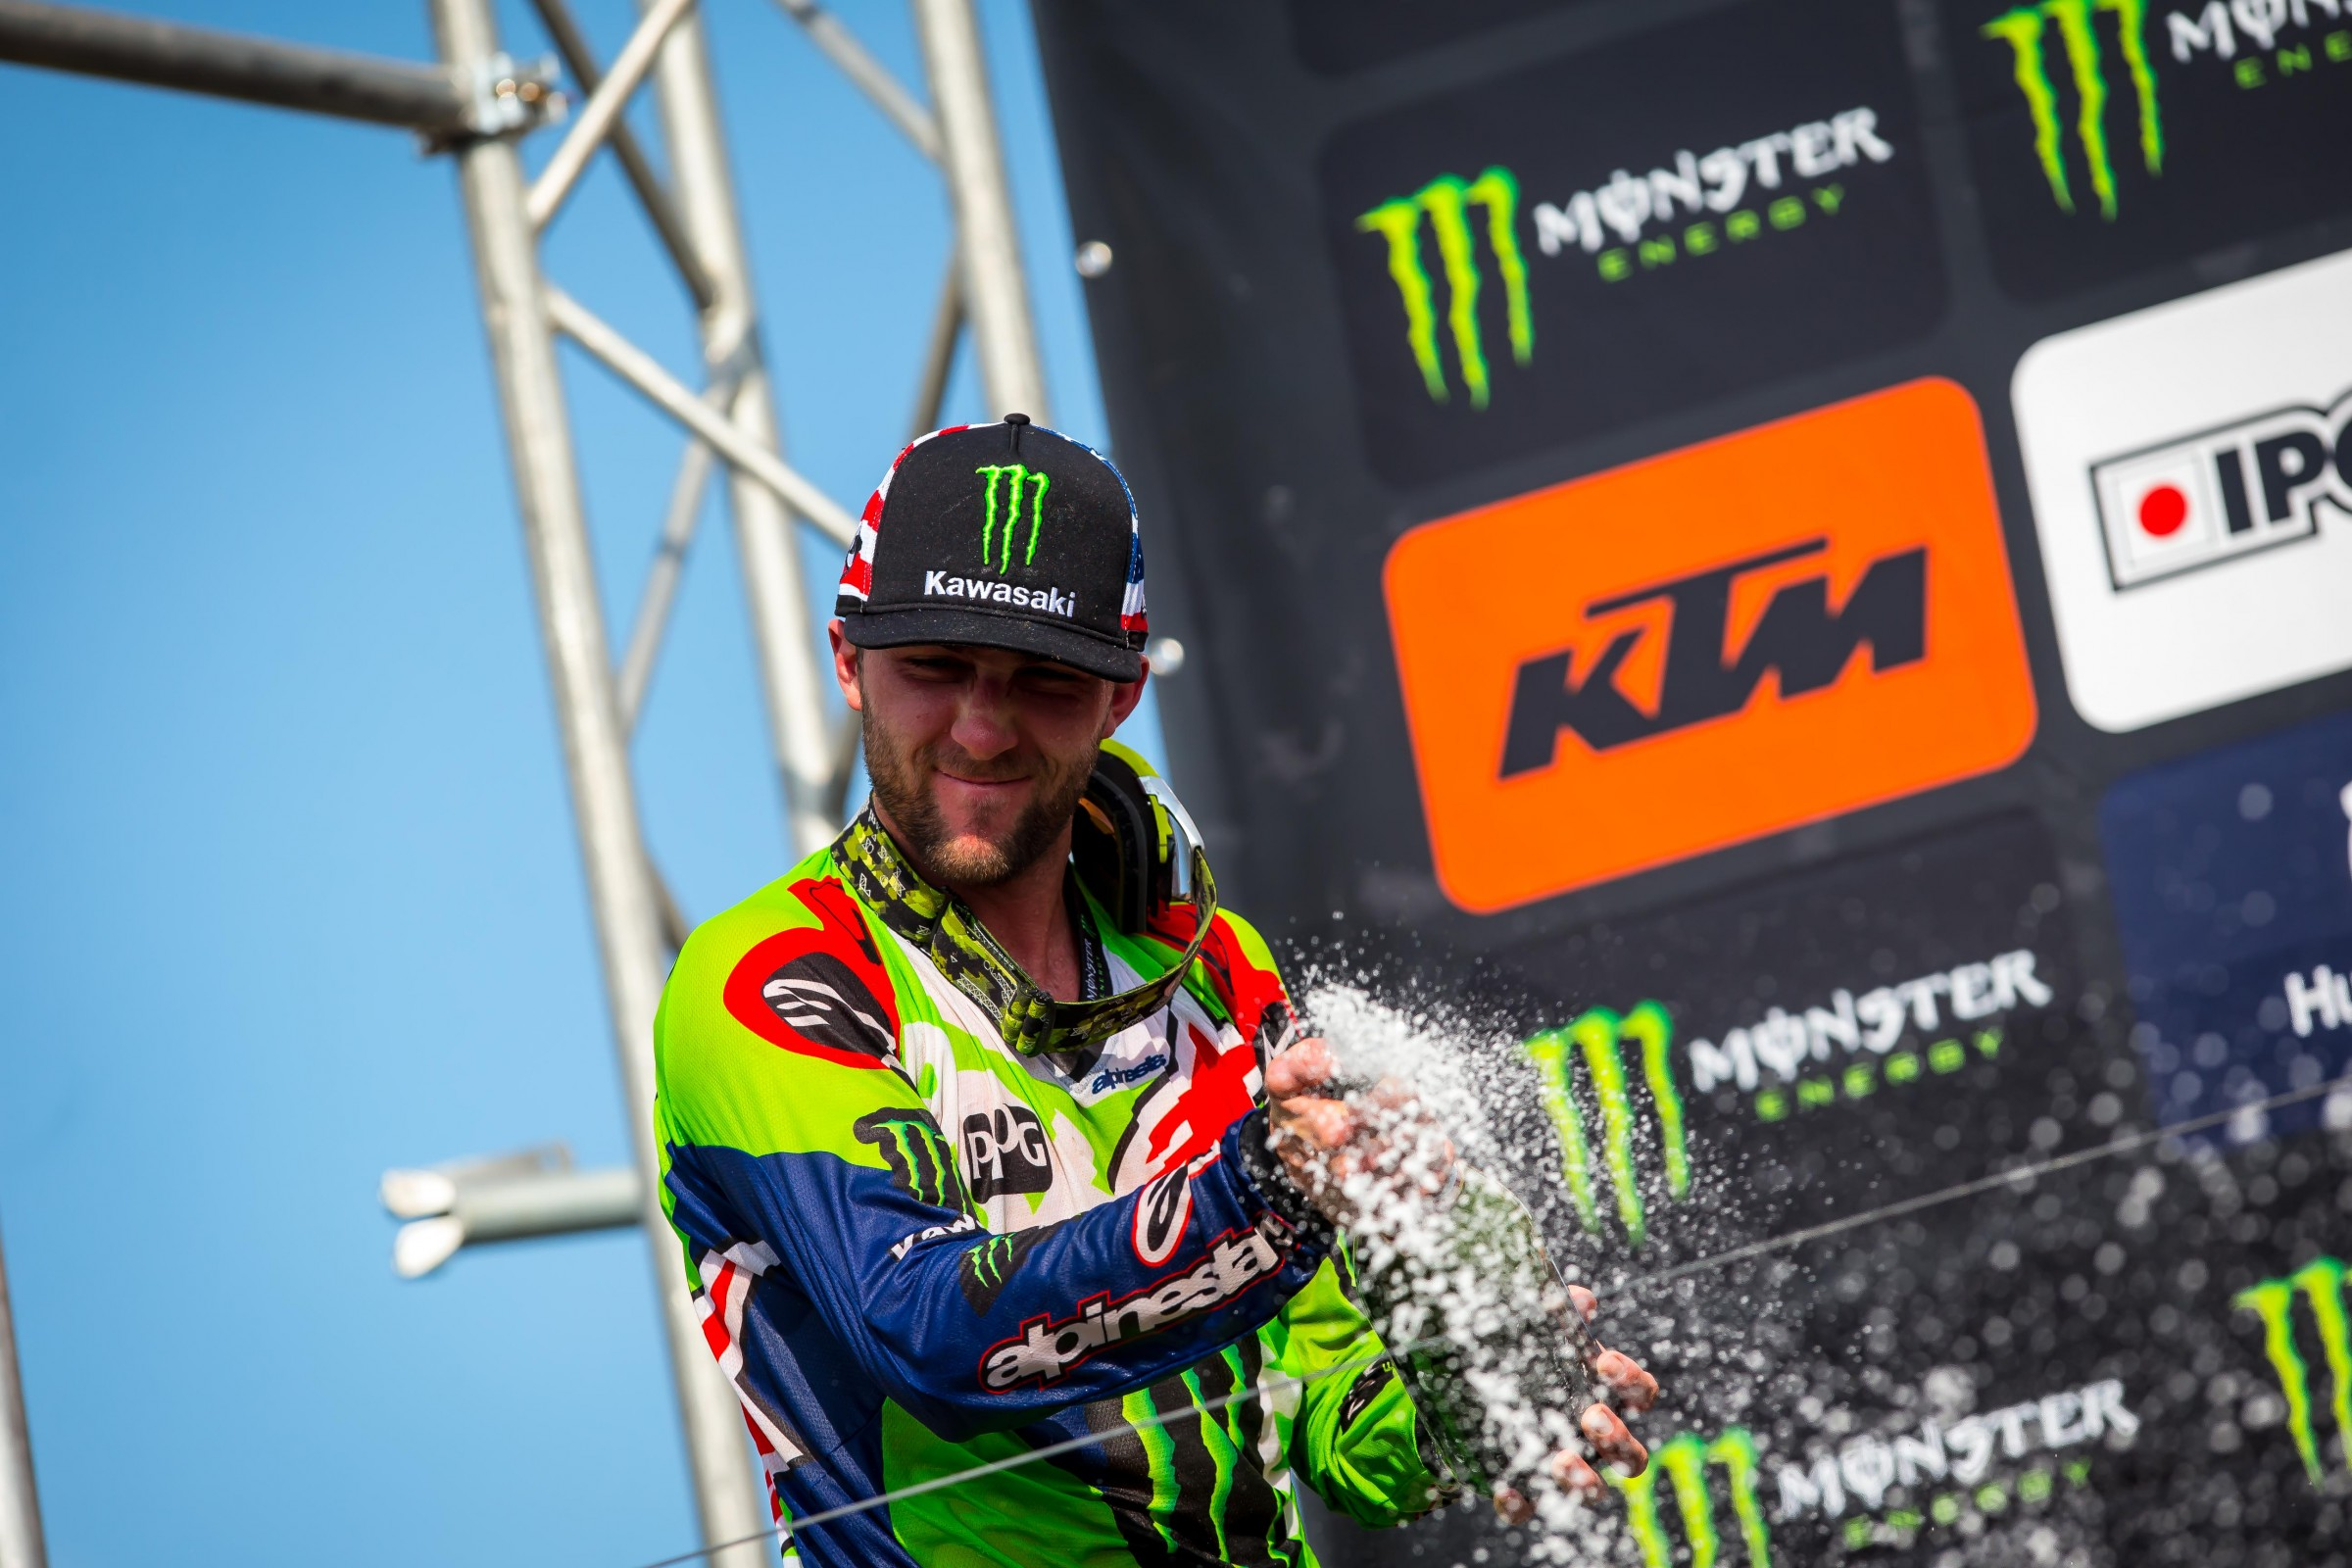 Tomac finished second overall on the day behind Jeffrey Herlings.